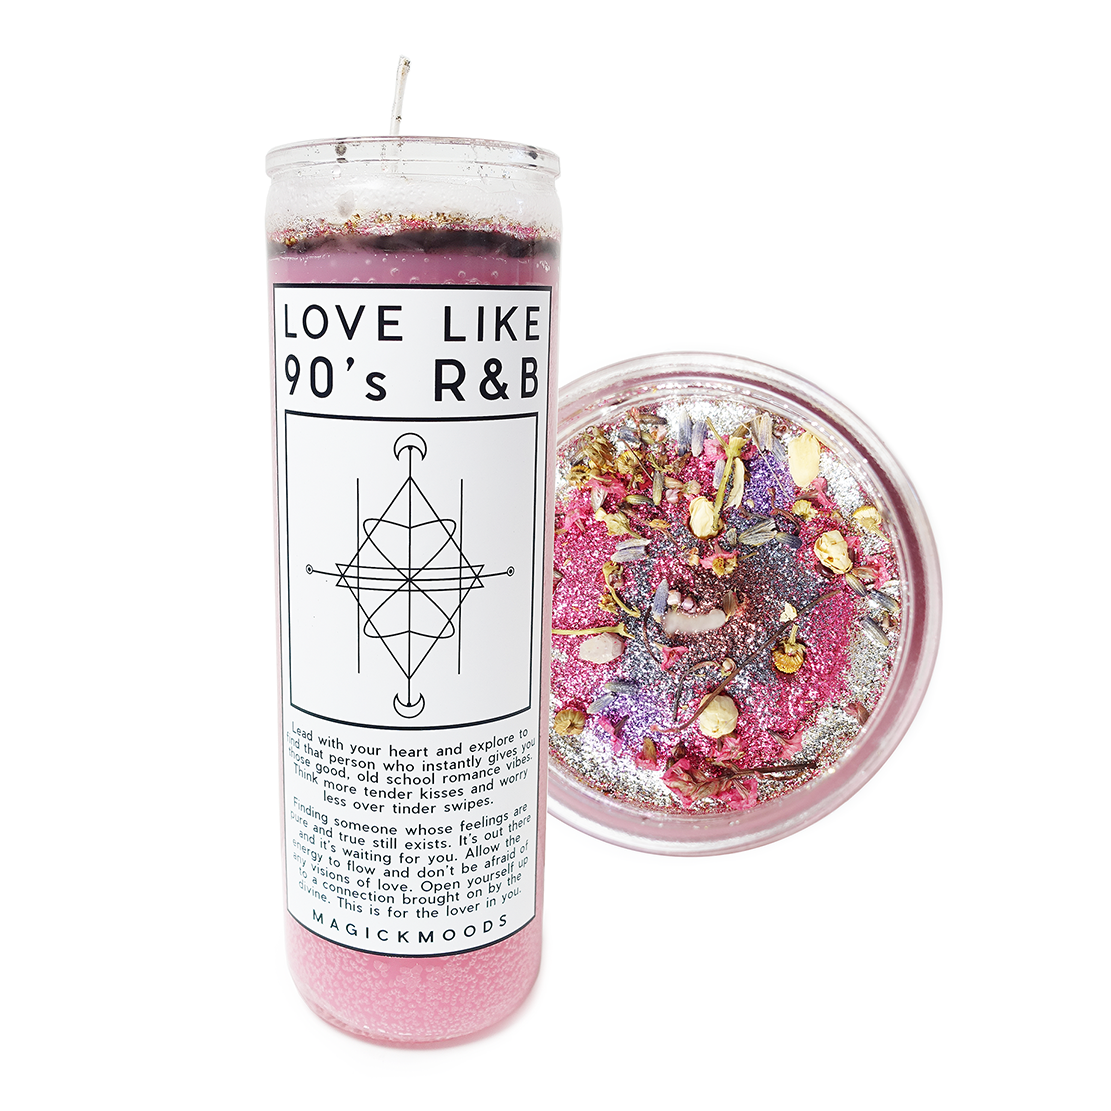 Love Like 90's R&B 7-Day Meditation Candle - PREORDER - Ships by 12/15